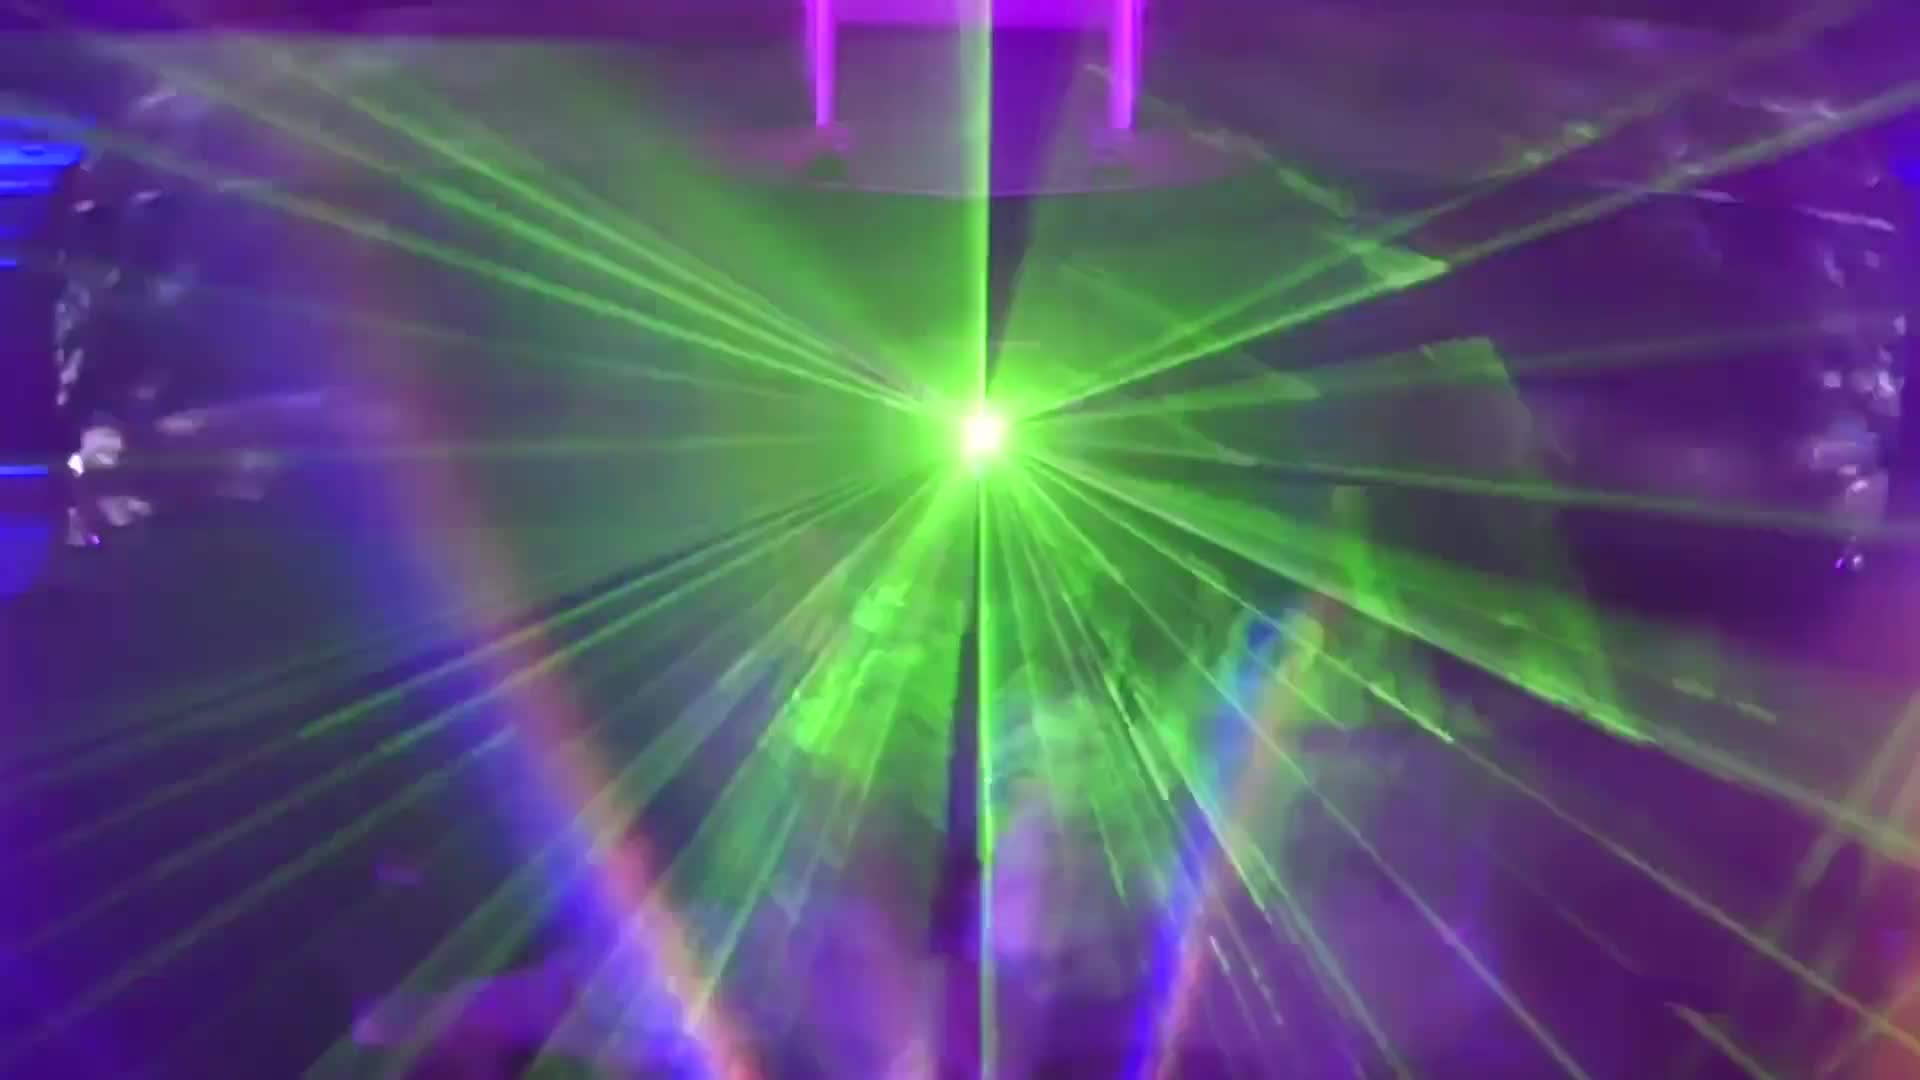 Disco laser nightclub light show rays